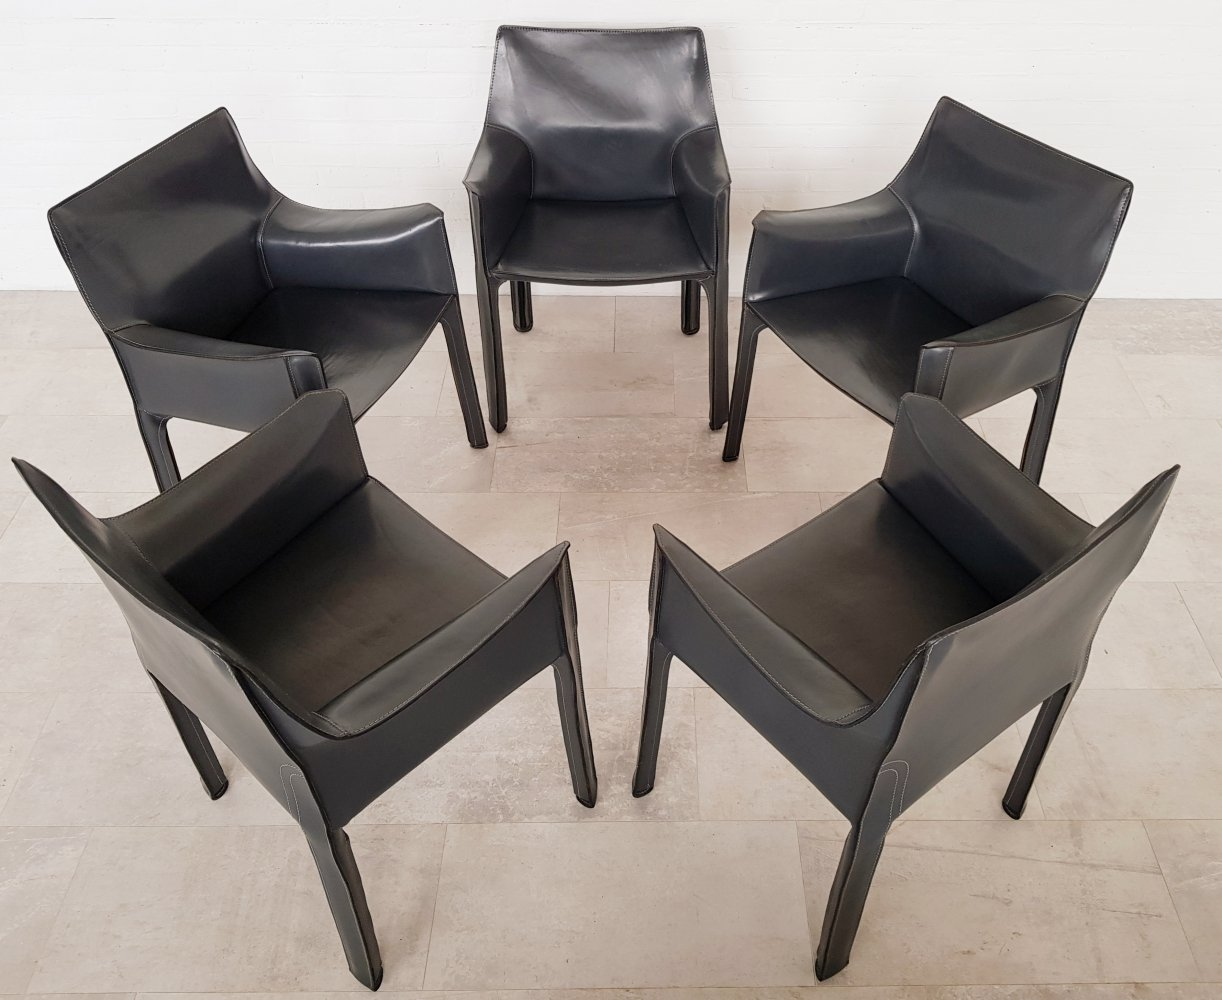 Set of 5 Cassina CAB413 dark grey dining chairs by Mario Bellini, 1980s